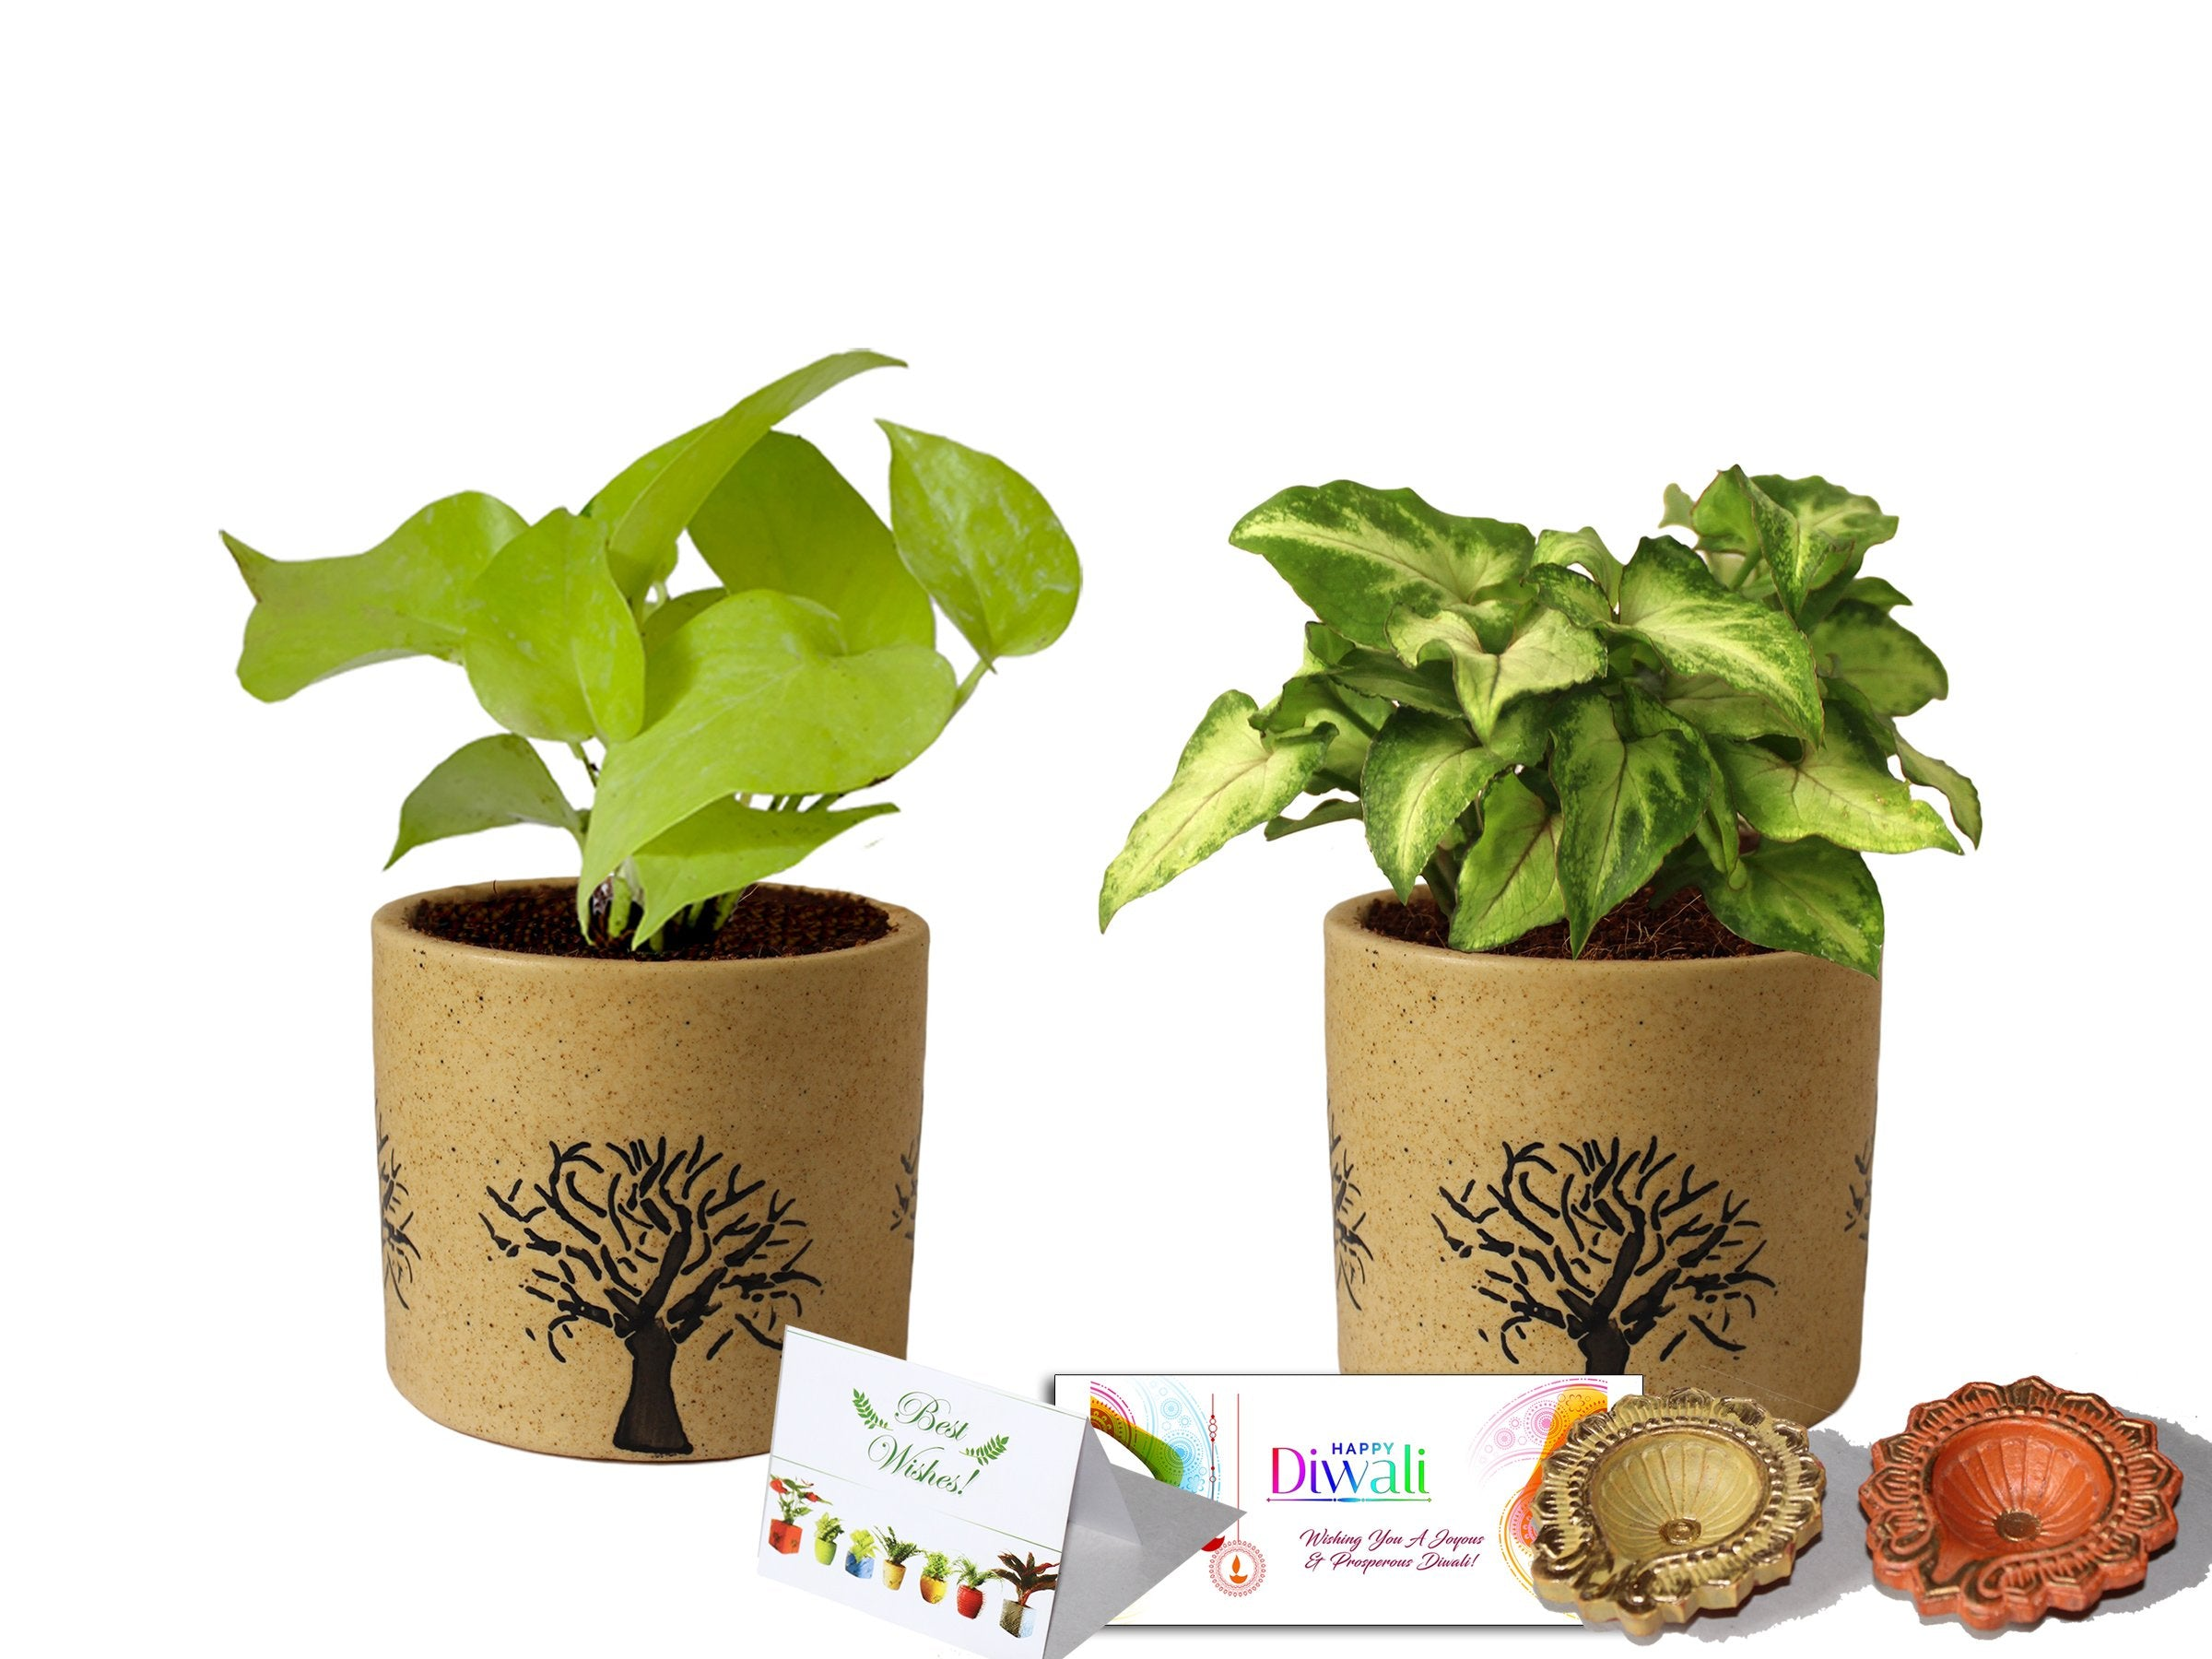 Rolling Nature Diwali Gift Combo of Good Luck Air Purifying Live Golden Pothos and Green Syngonium Plant in Brown Barrel Aroez Ceramic Pot